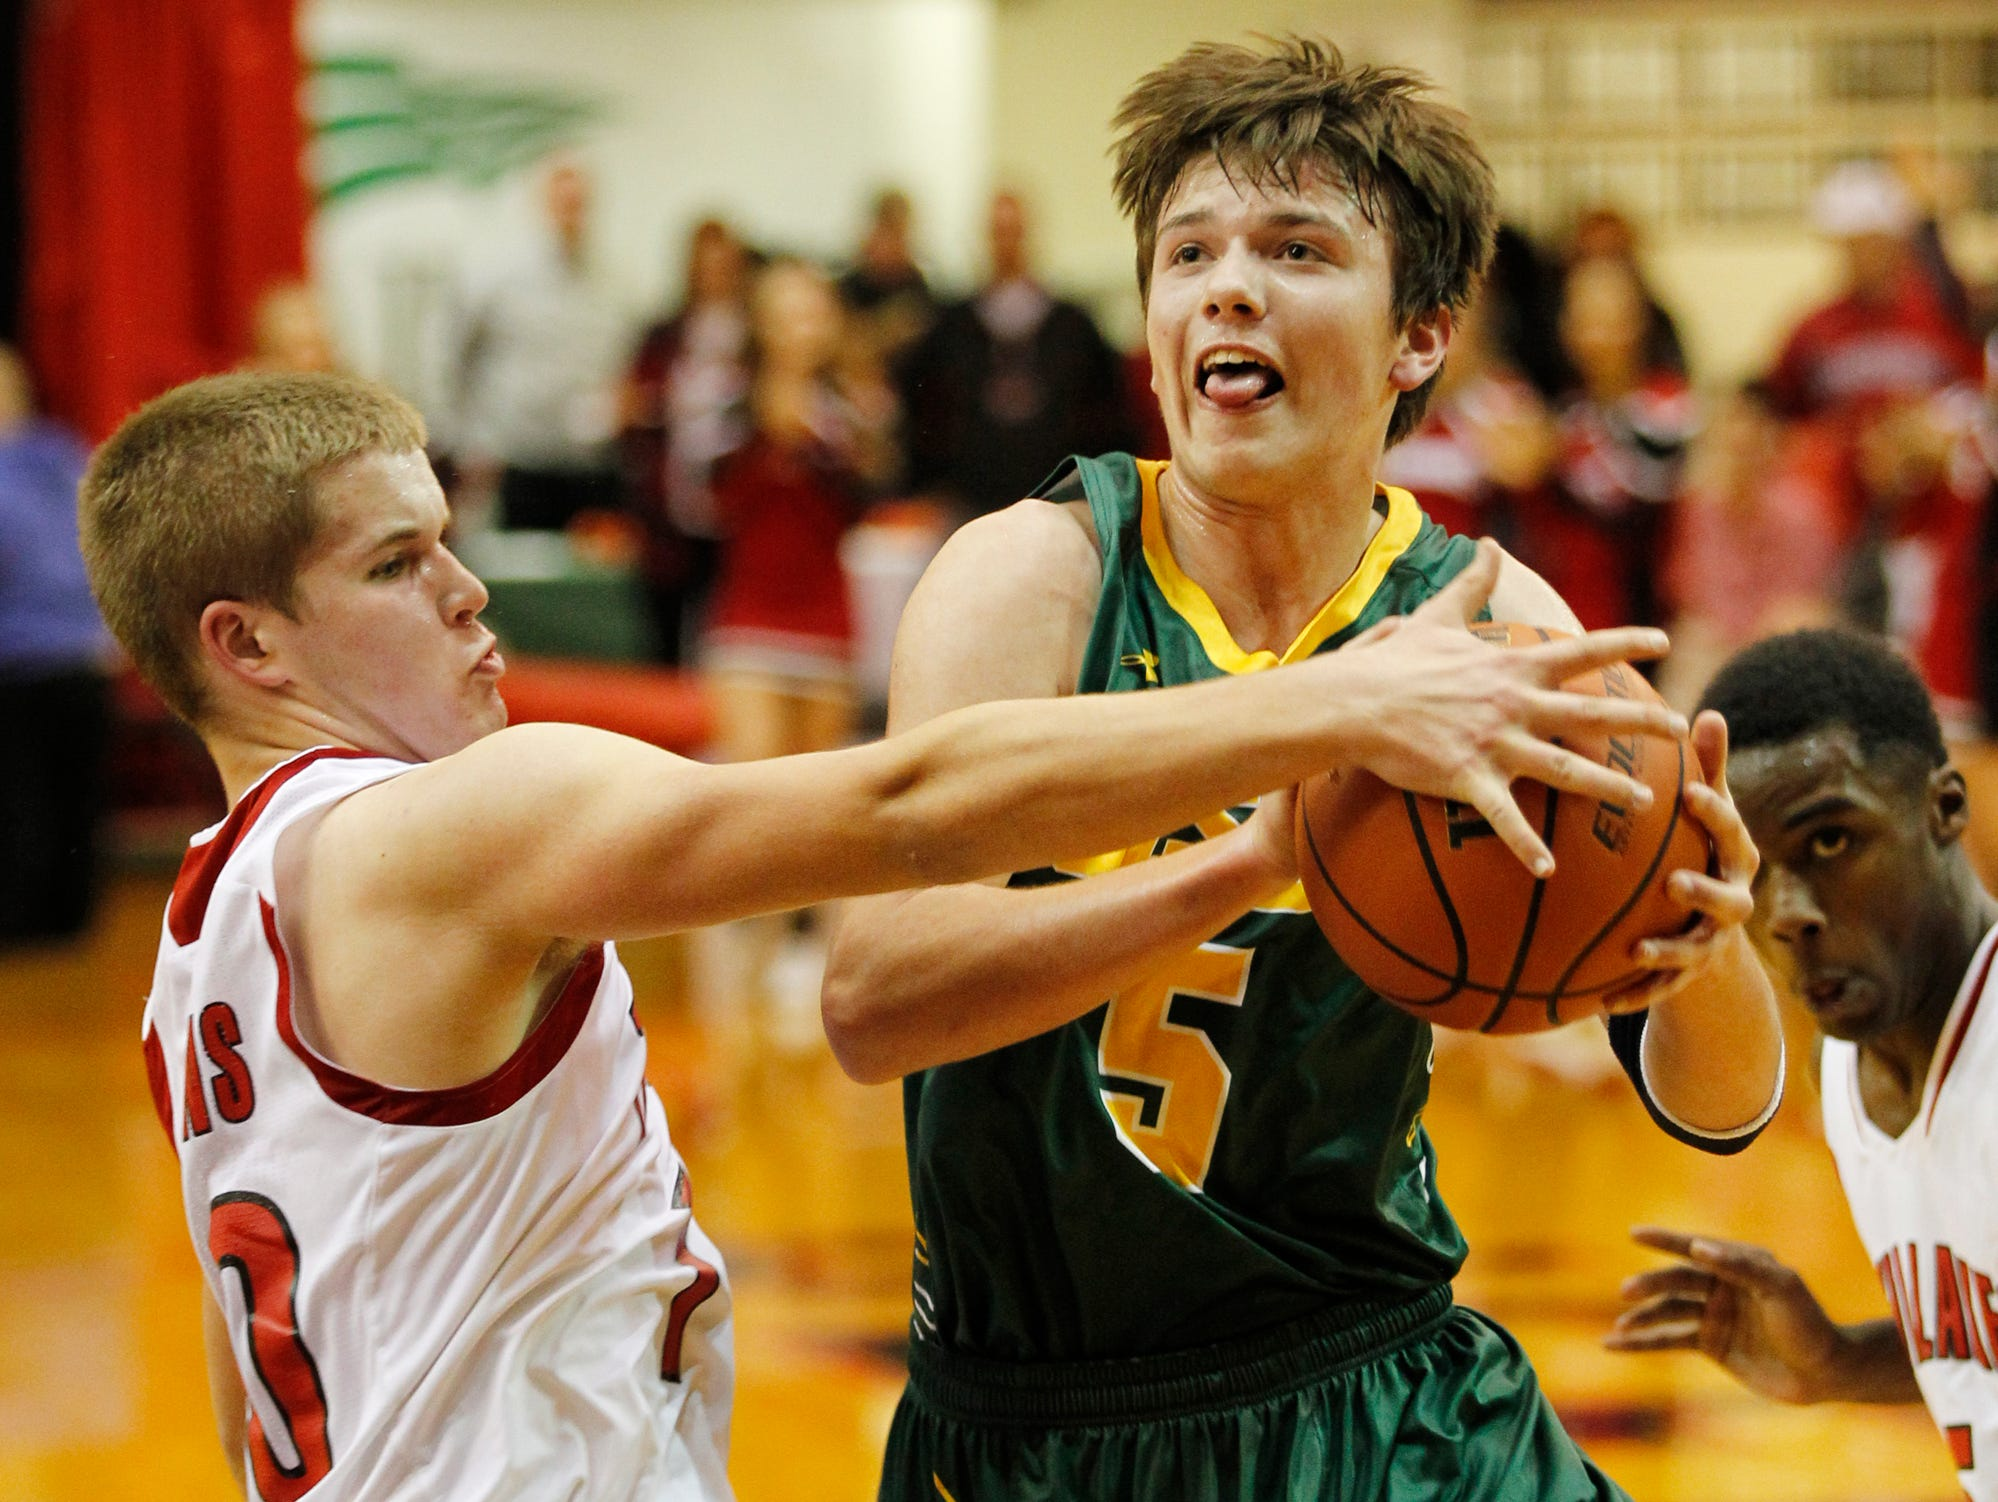 Bailey Rothrock of Twin Lakes strips the ball from Joey Waling of Benton Central in the J&C Hoops Classic Monday, November 30, 2015, at Jefferson High School. Twin Lakes thumped Benton Central 75-44.